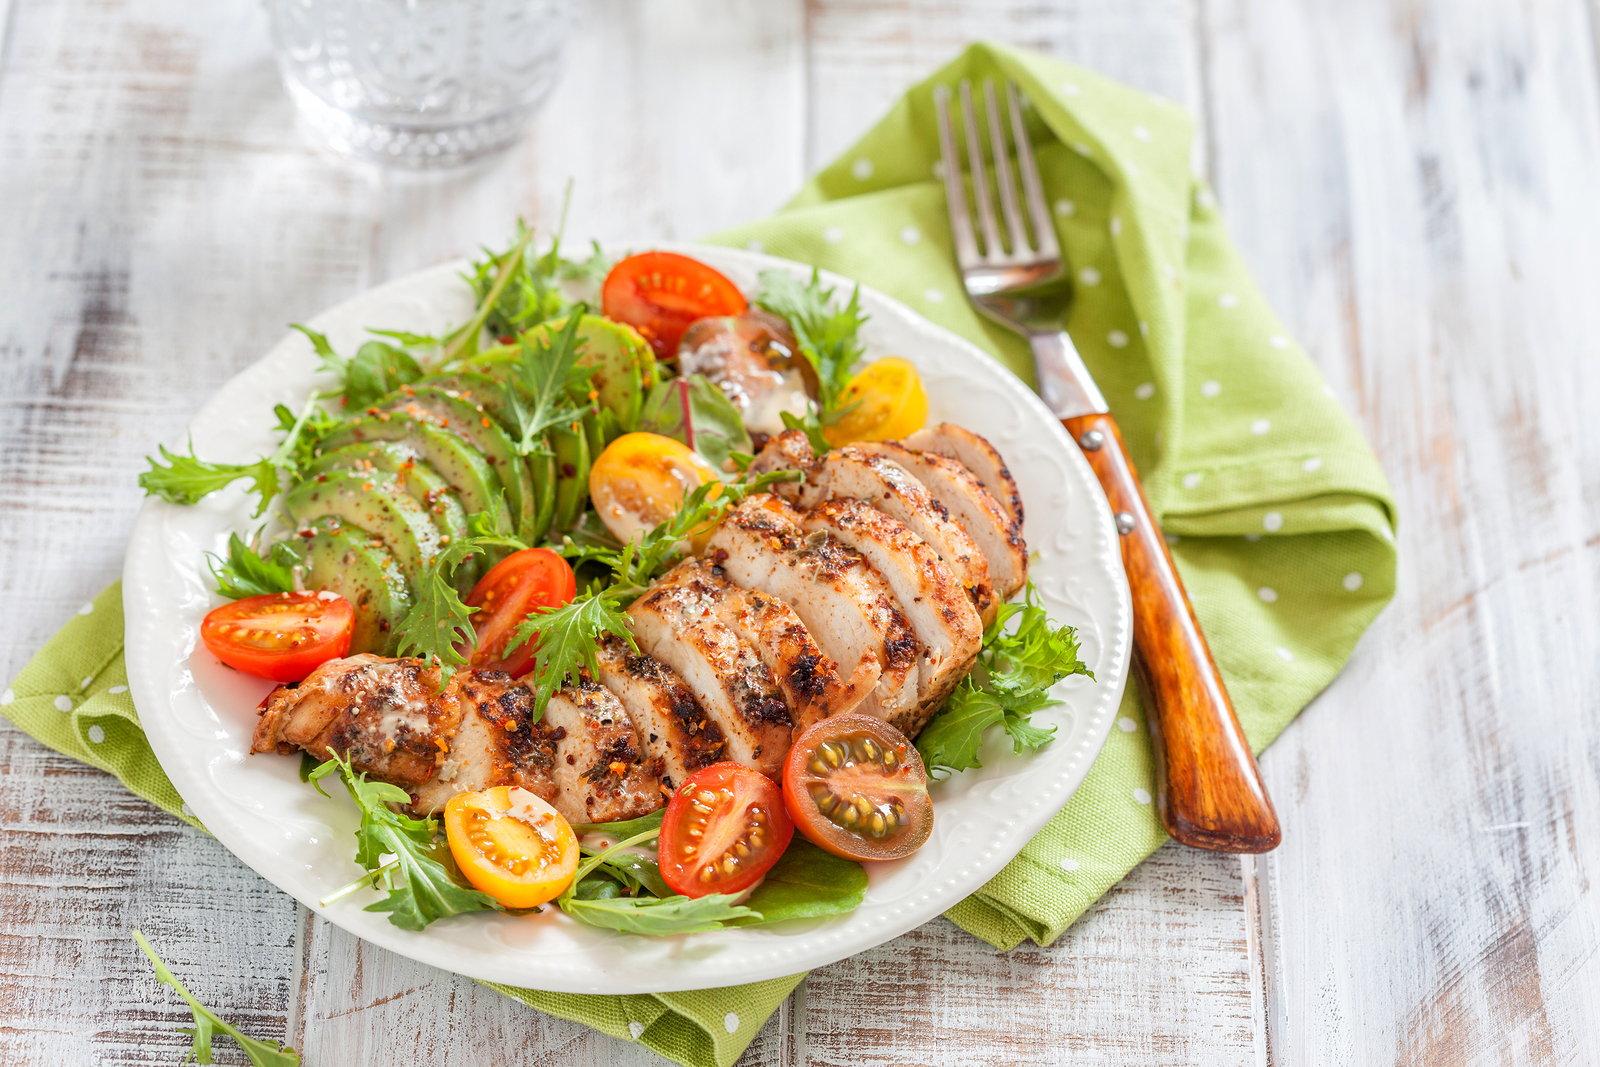 Sample Ketogenic Diet Meal Plan - Healthy food. Salad plate with colorful tomatoes, chicken breast and avocado